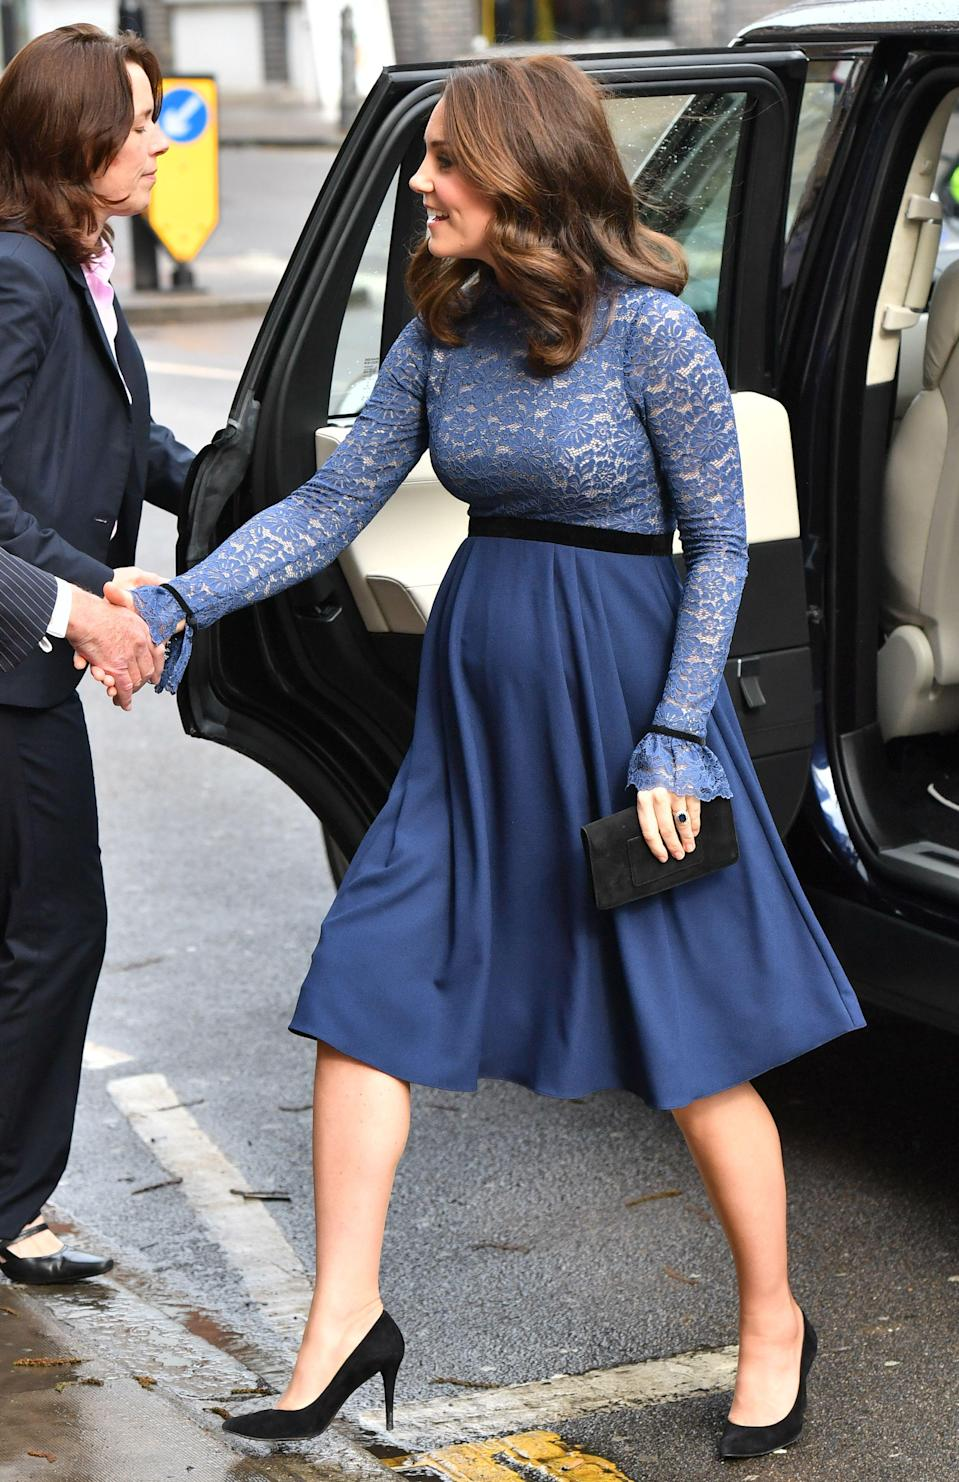 <p>Once again proving that she's the master of maternity dressing, the Duchess of Cambridge chose a knee-length blue dress for a London outing this weekend (Rex features) </p>